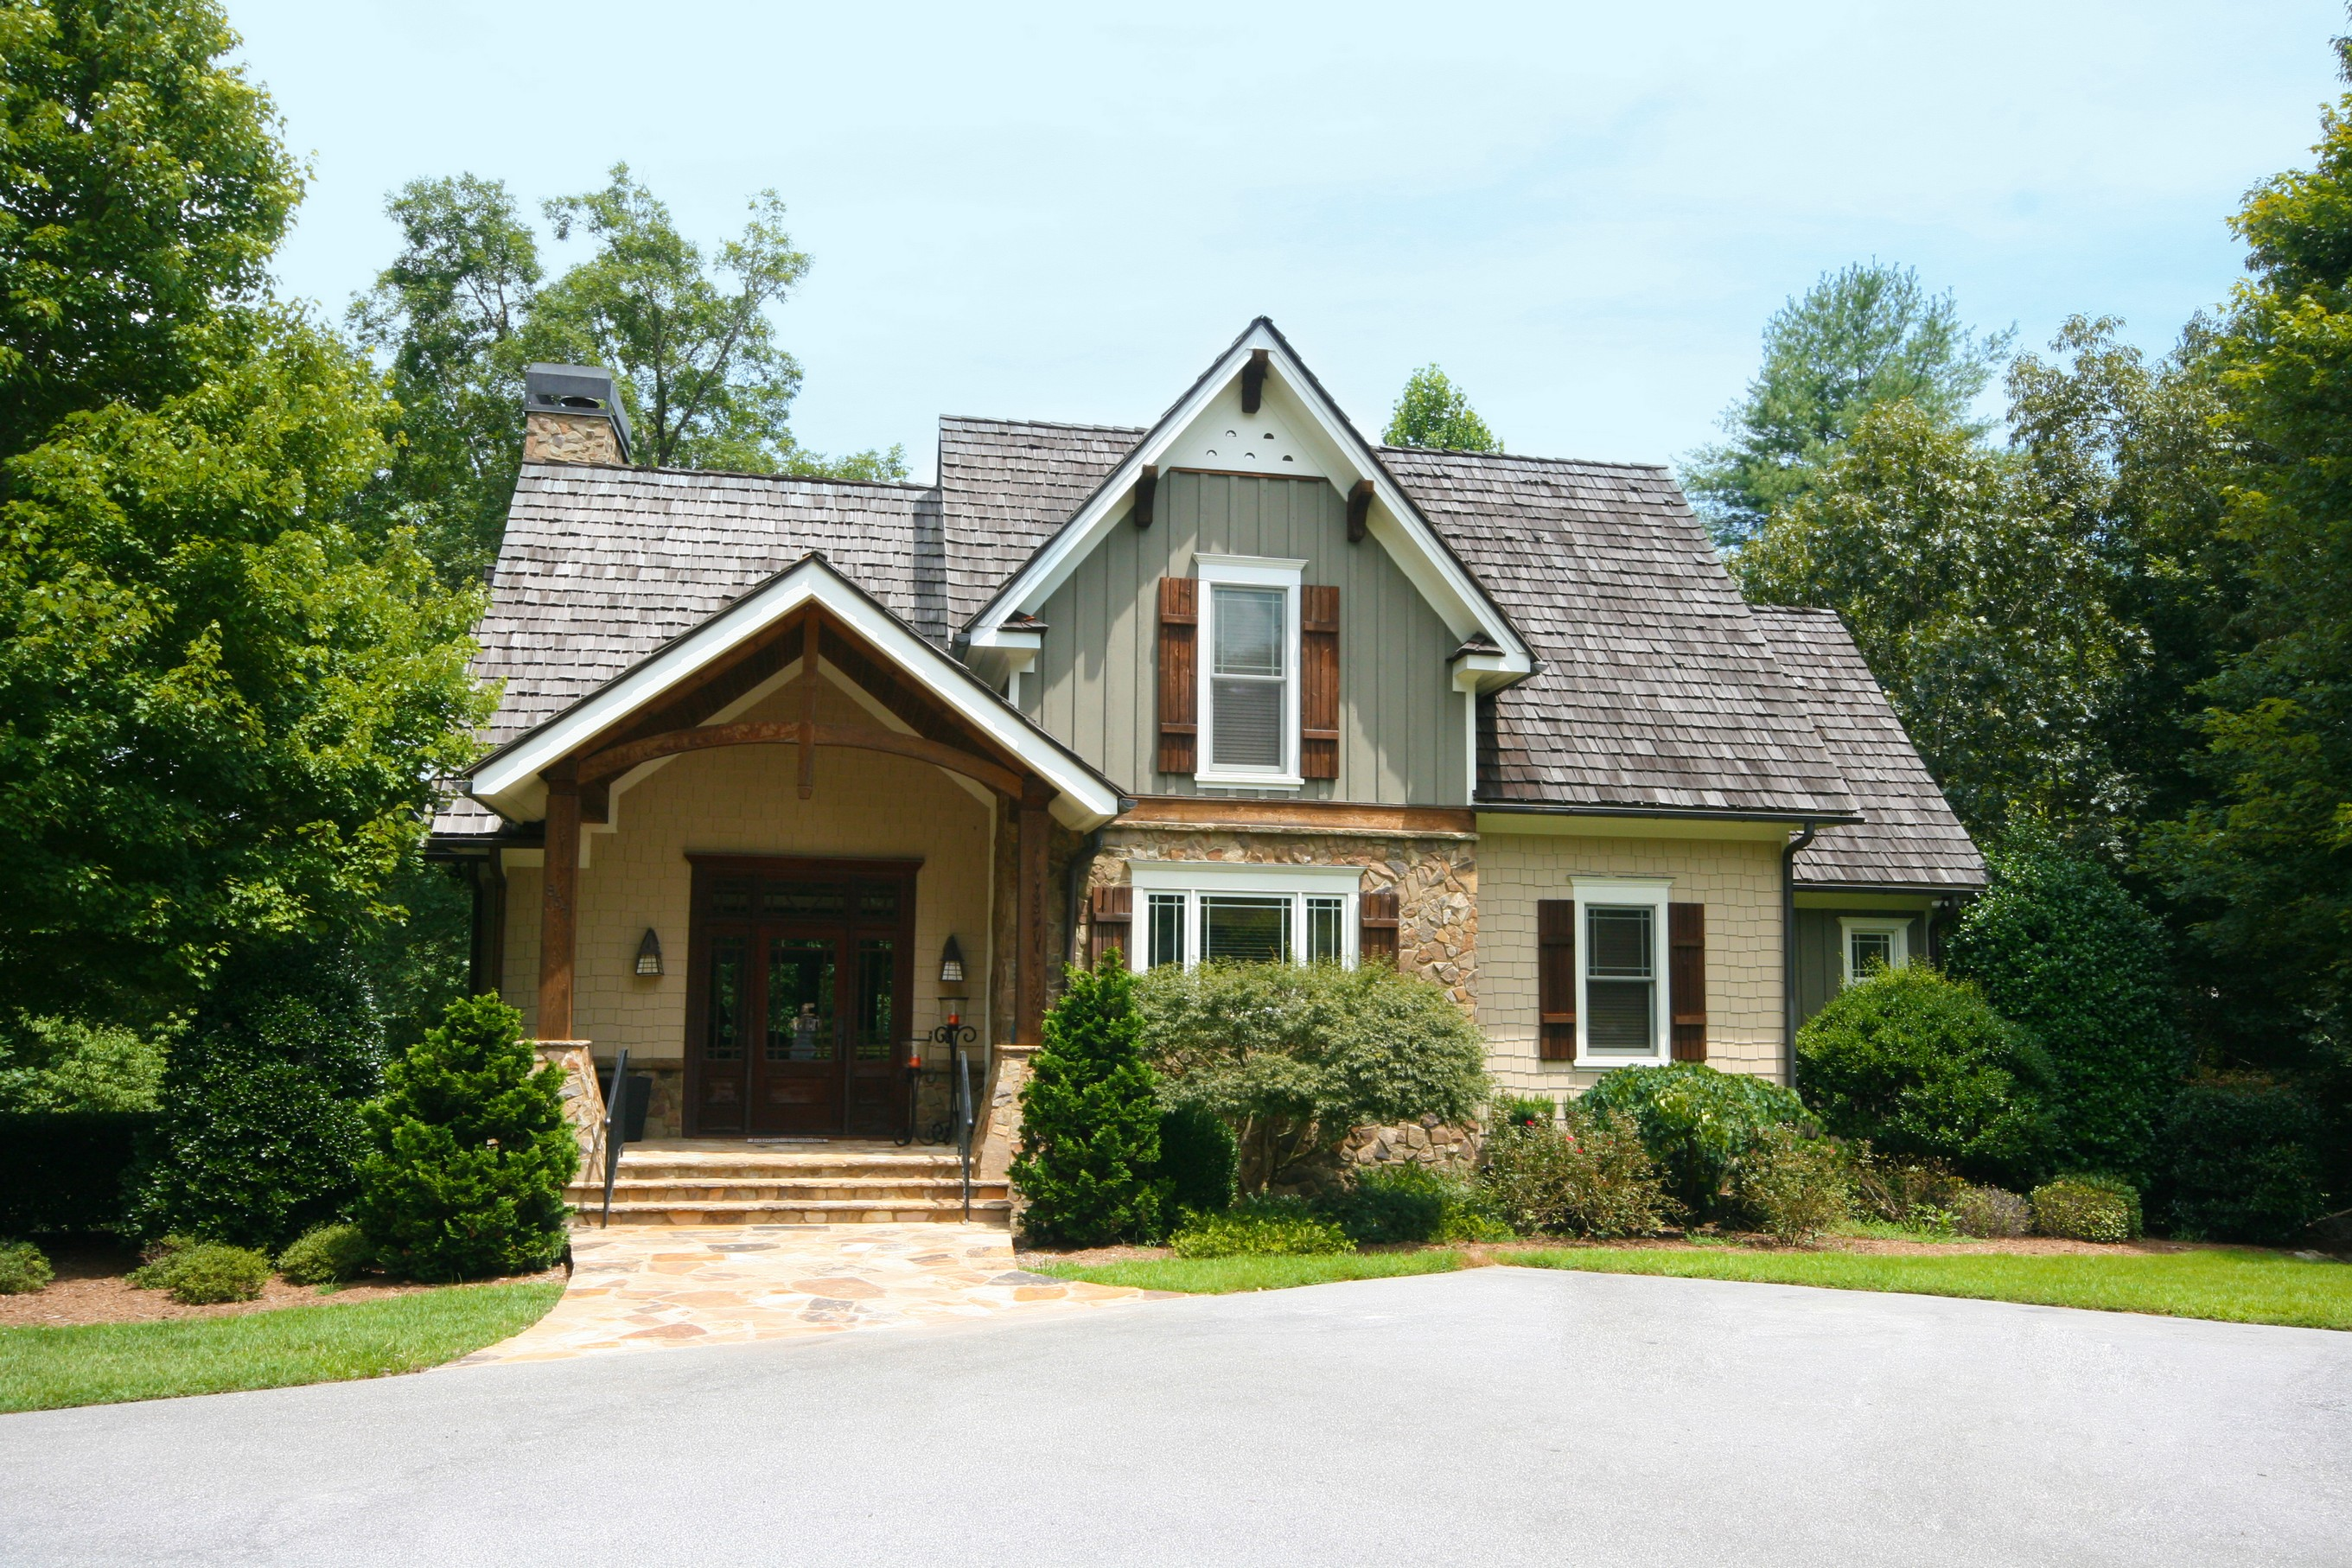 Single Family Home for Sale at Enchanting Club Cottage Uniquely Located on the Lake 857 Club House Drive The Cliffs At Keowee Vineyards, Sunset, South Carolina 29685 United States